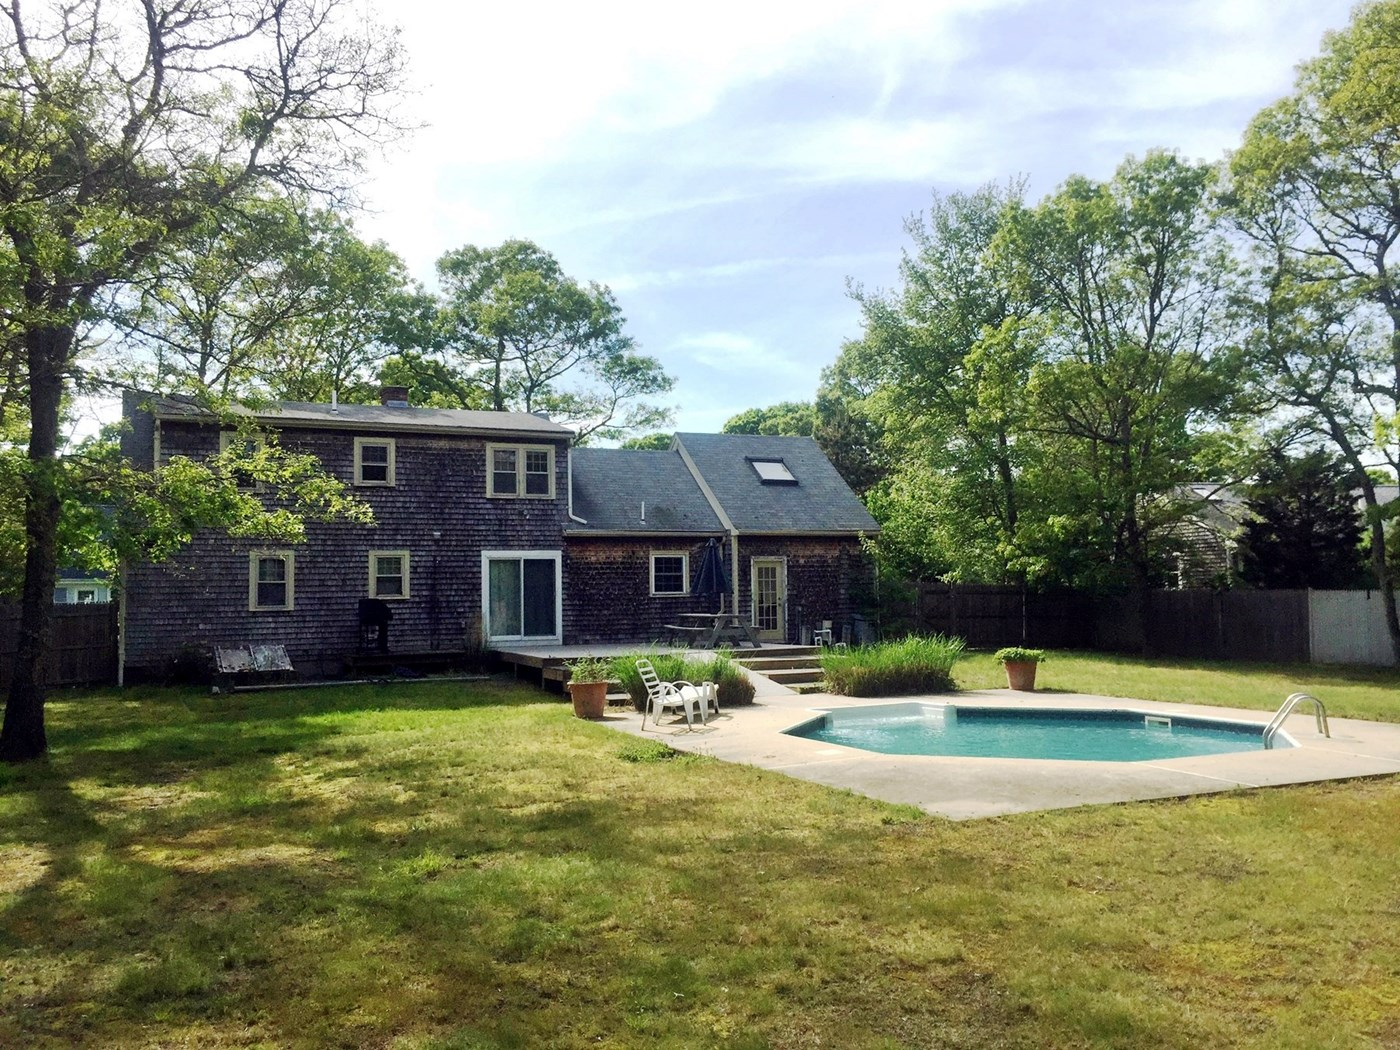 Falmouth Vacation Rental Home In Cape Cod Ma 02536 Id 6477